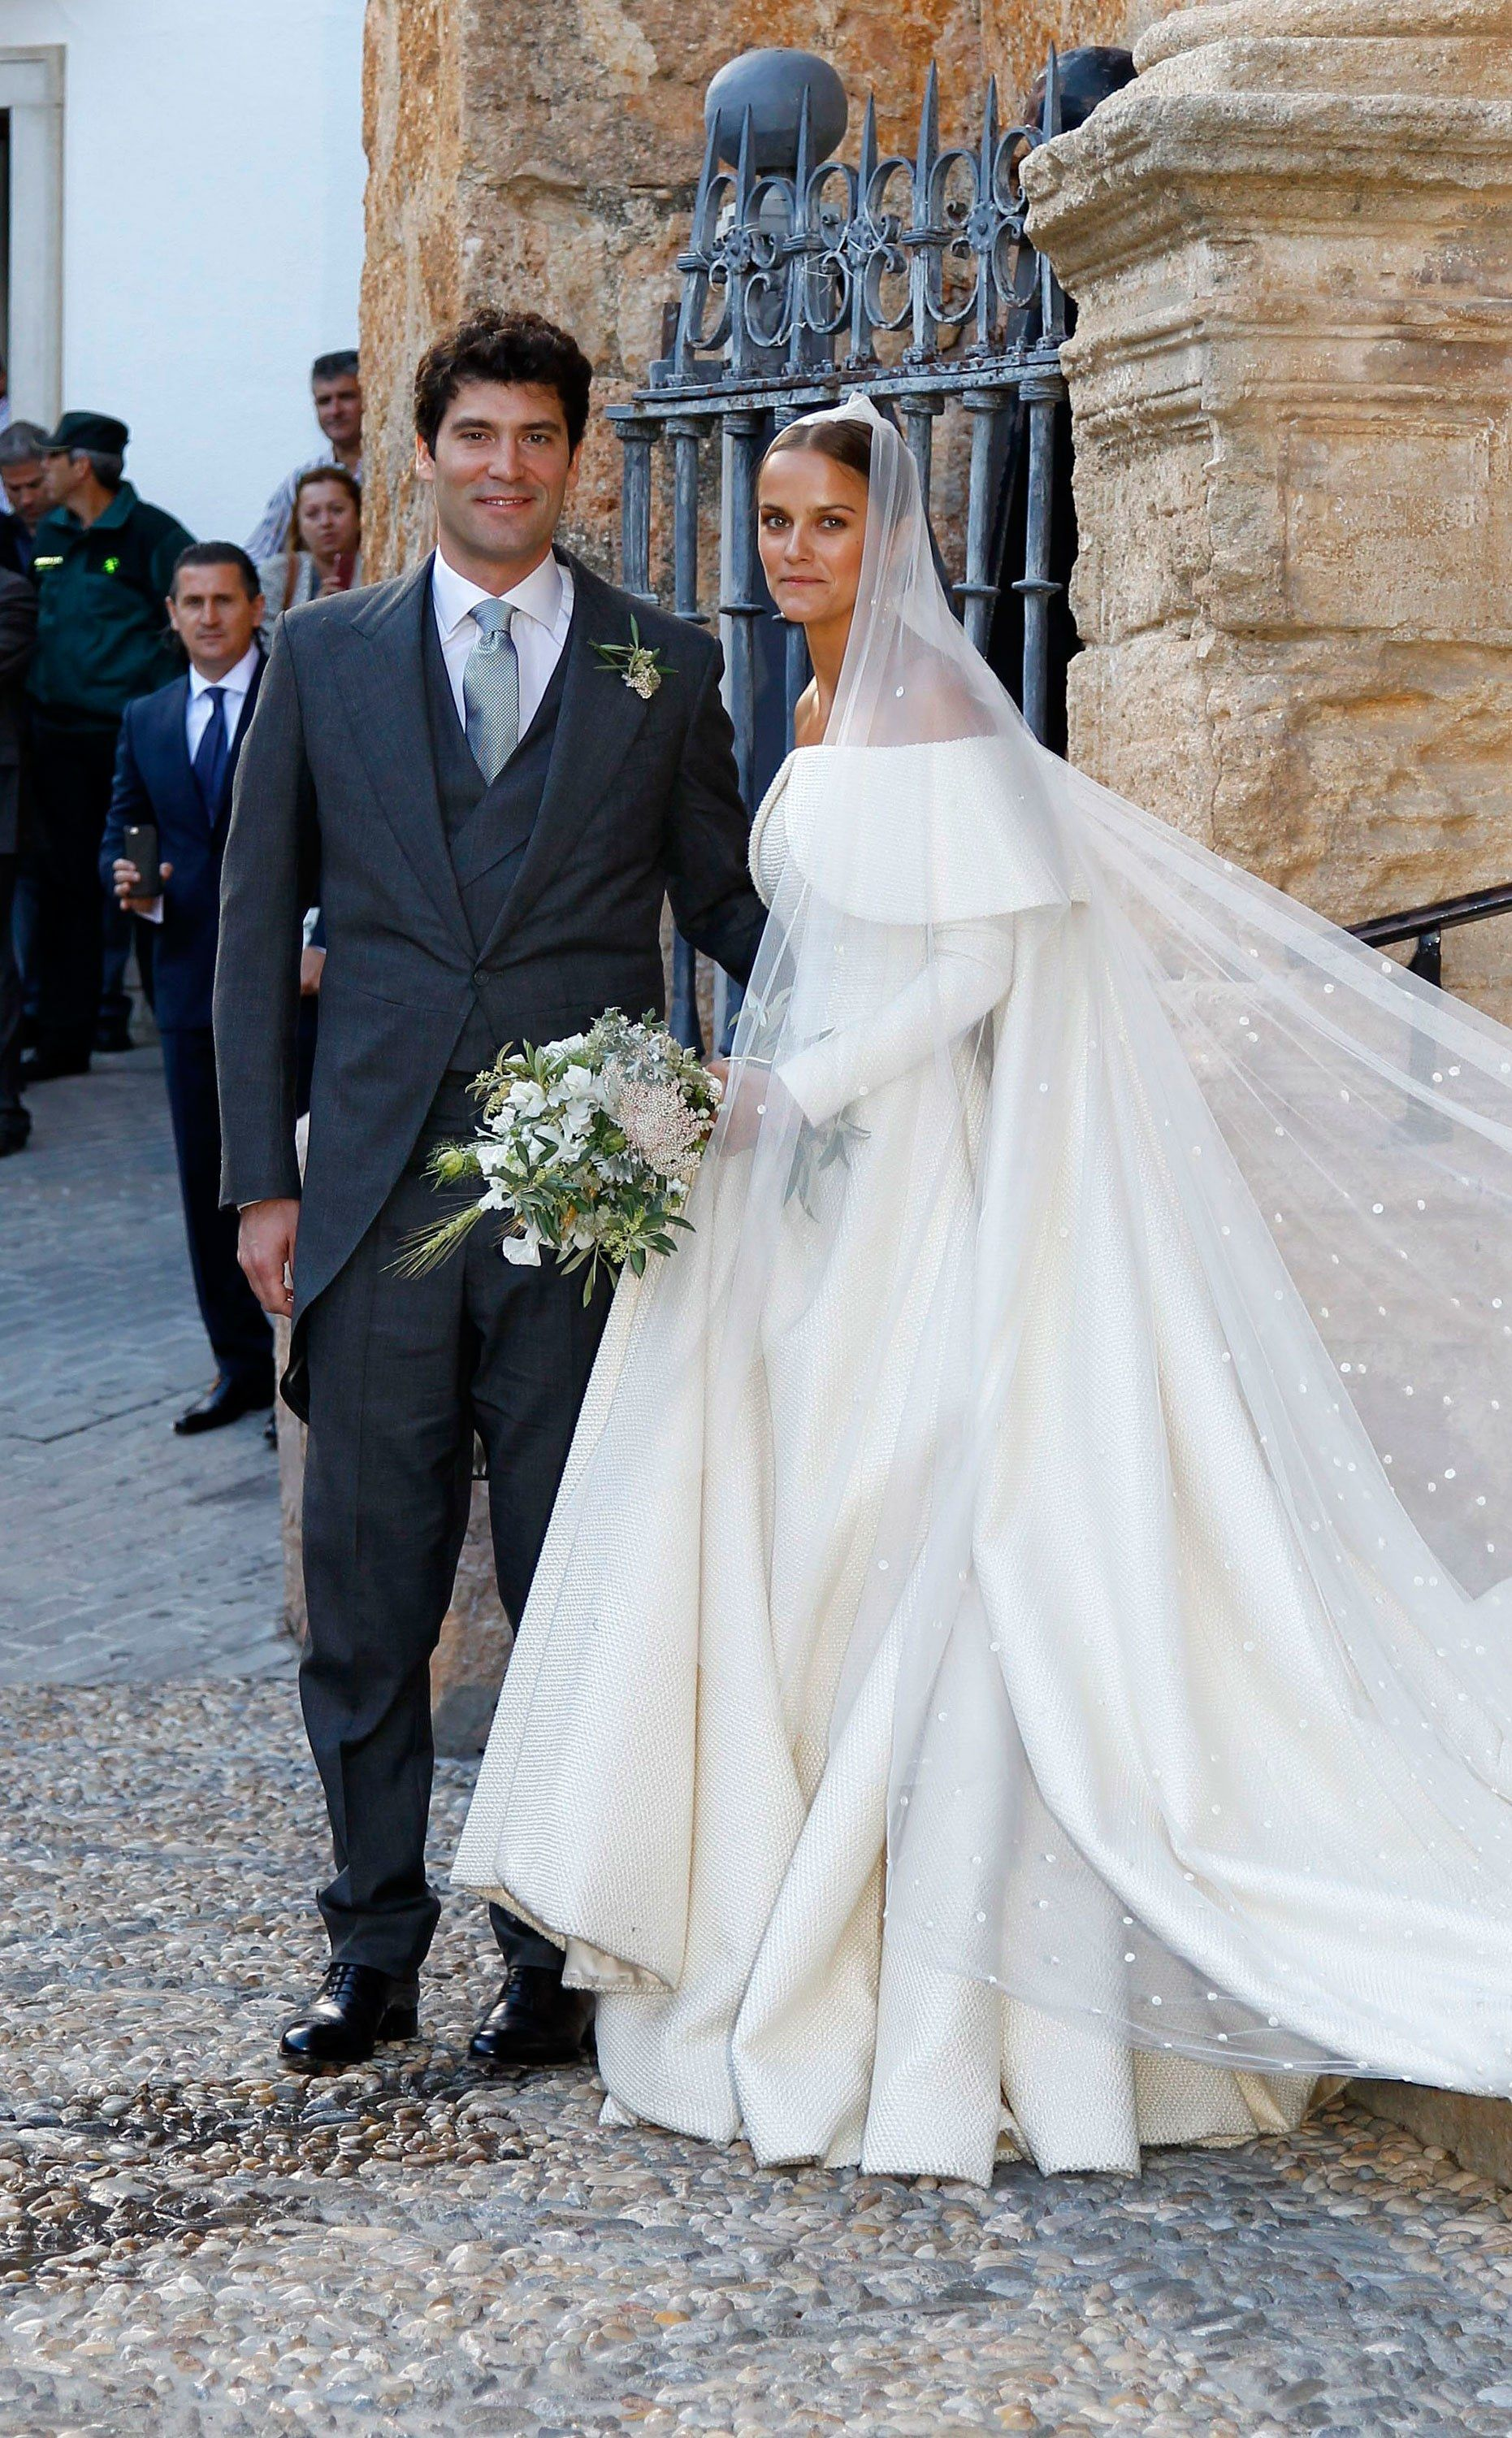 The Bride Wore An Off Shoulder Emilia Wickstead Wedding Dress And A Cathedral Length Veil Accented With Embroidered